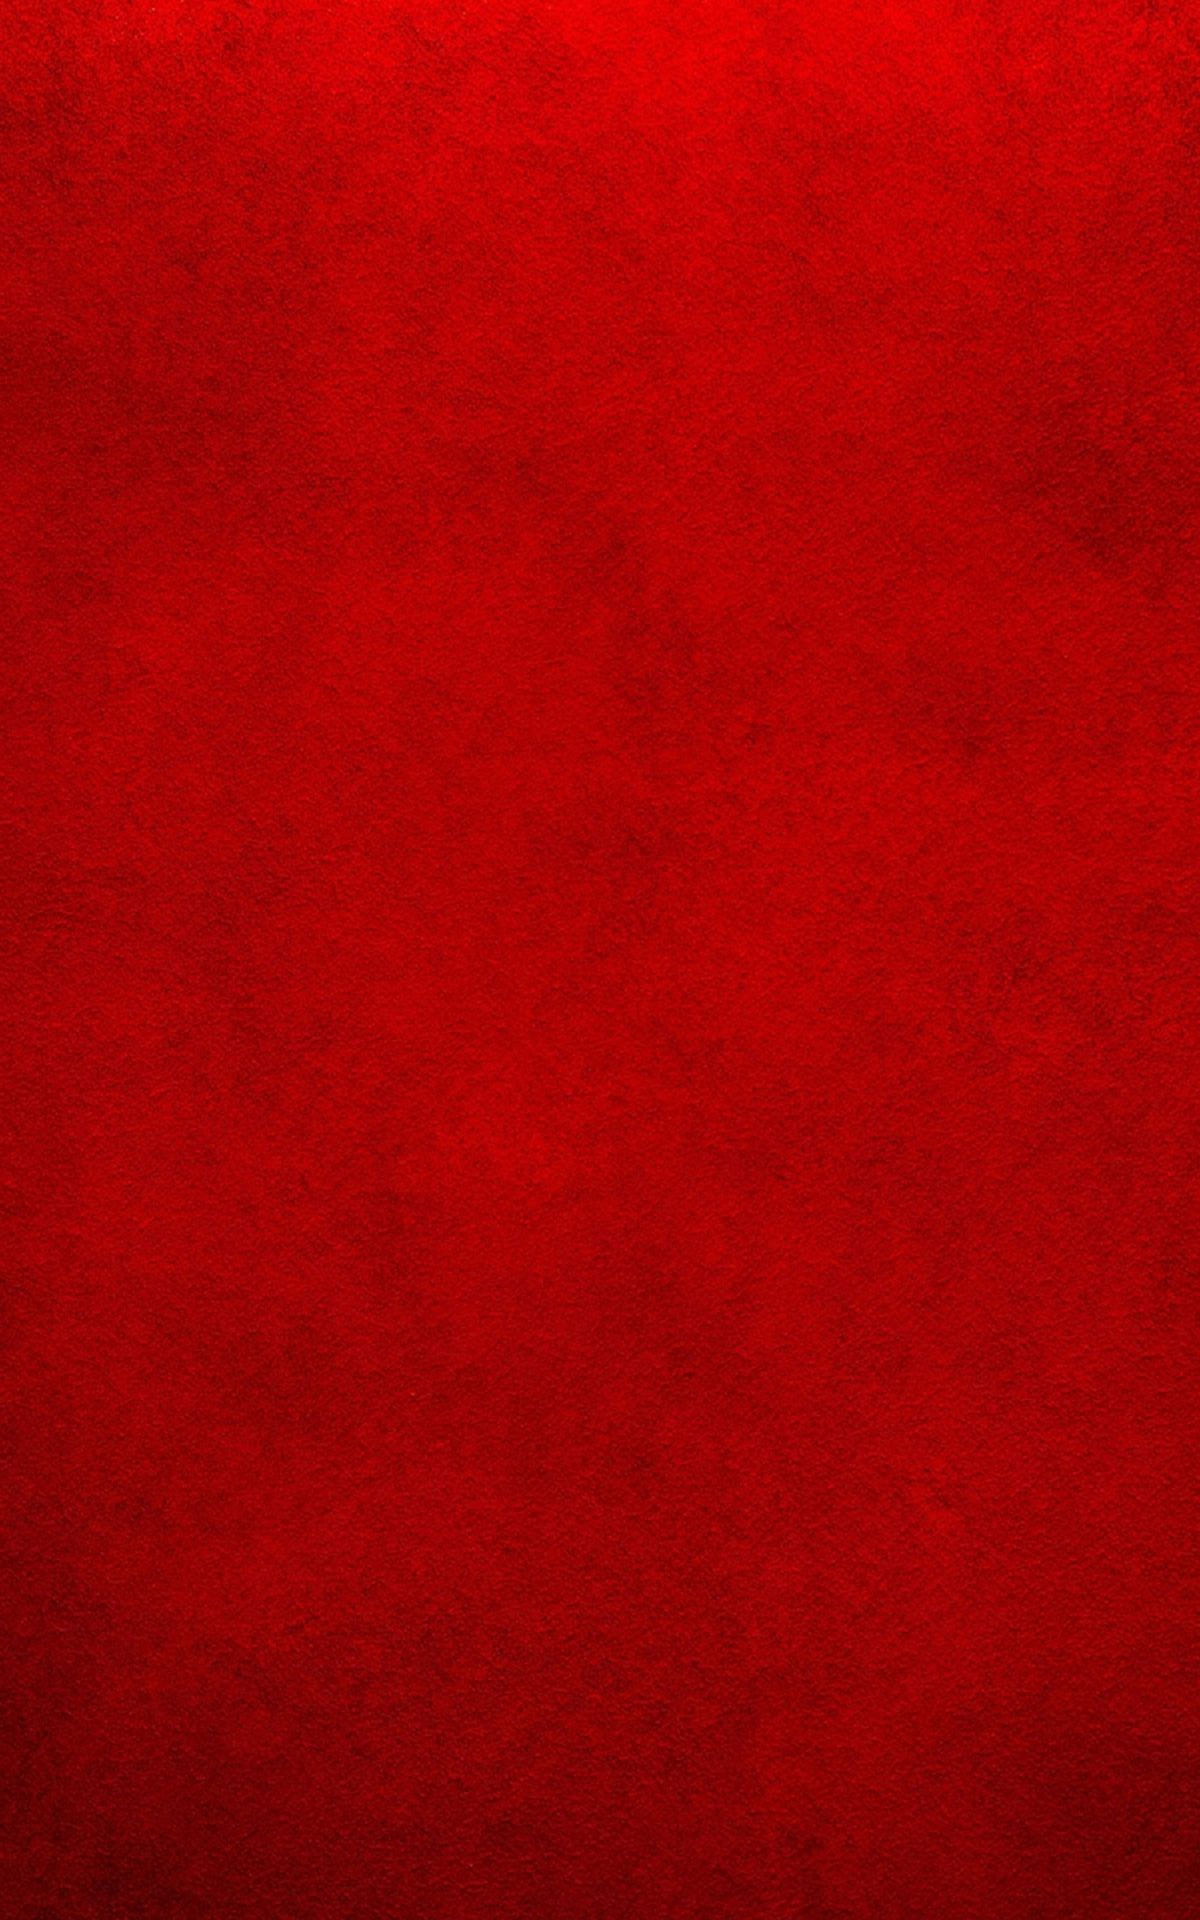 Red Wallpaper iPhone